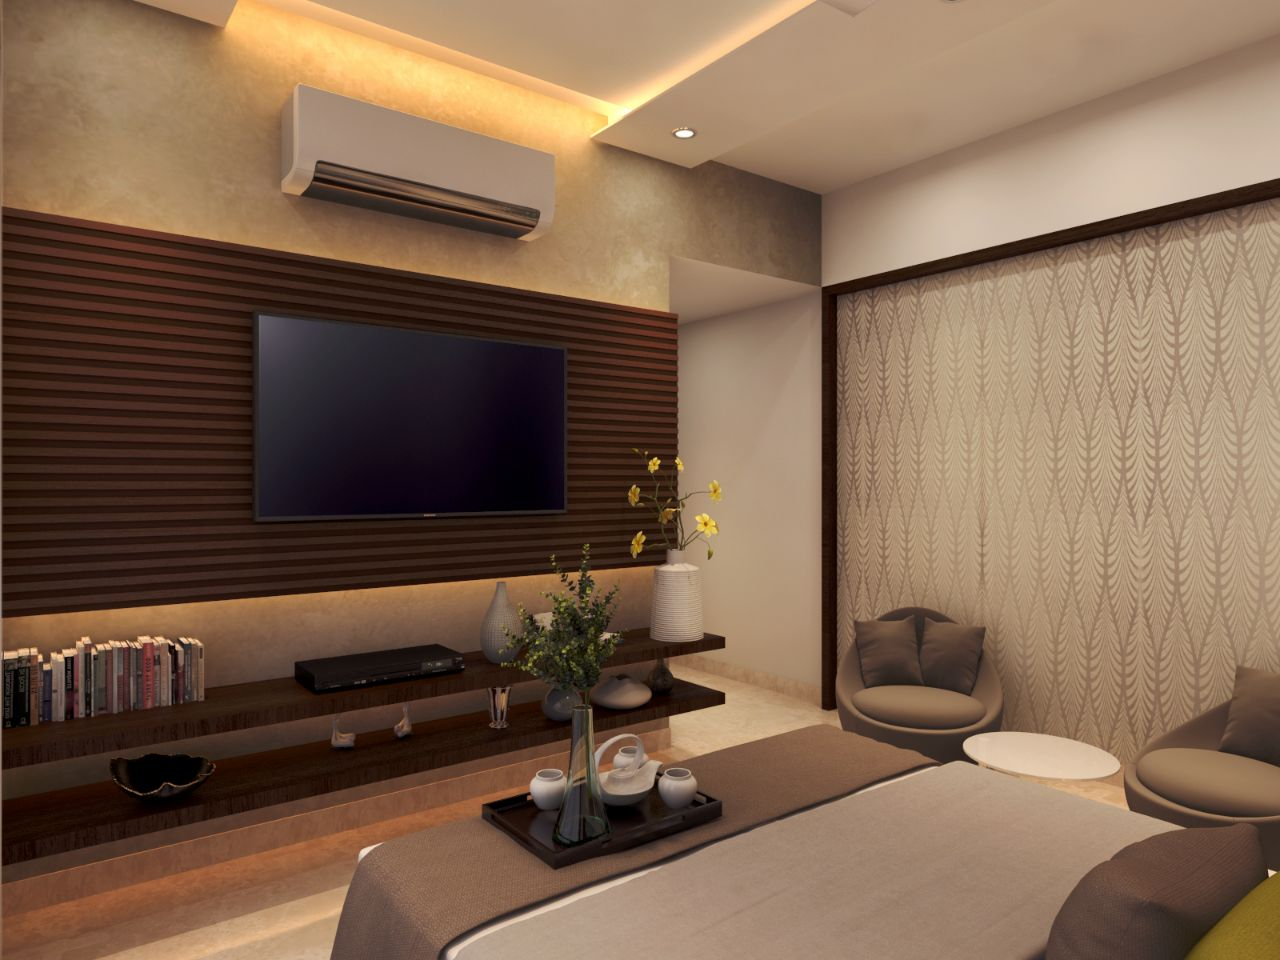 Best Interior Designing Company in Hyderabad